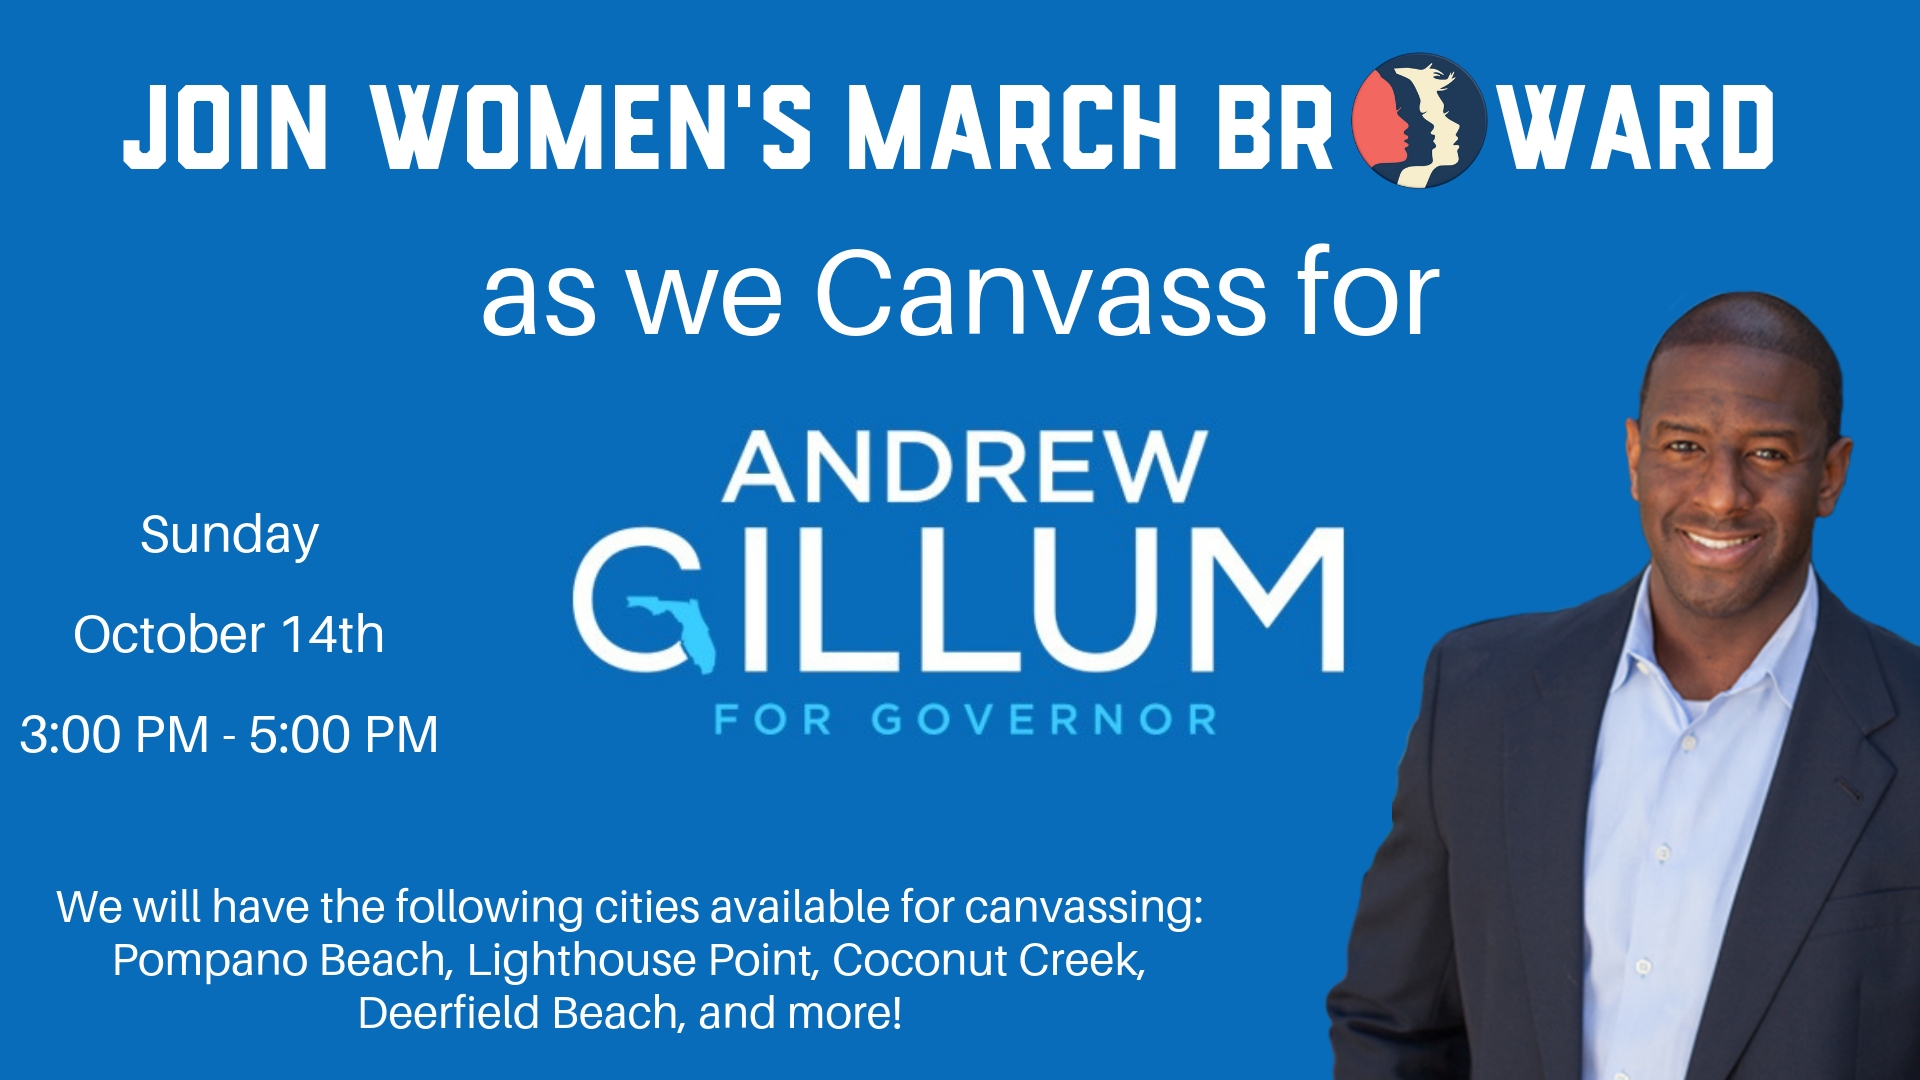 10-14-18: Canvassing for Andrew Gillum - Please join Women's March Broward as we canvass for the next Governor of Florida, Andrew Gillum. Mayor Gillum needs our help in Broward to talk to folks about his campaign and remind them to vote on November 6th. The BEST way to do that is face to face. We will be knocking on doors in North Broward in various cities. We have Coconut Creek, Pompano Beach, Lighthouse Point, and Deerfield Beach to start. If you are interested in leading one of these areas for us on October 14th, please send us a message!Here are the Names and Emails for the Leads in each City to Contact:-Pompano Beach: Gabriela@womensmarchfl.org-Lighthouse Point: Tina@womensmarchfl.org-Deerfield Beach: ShakemaG@yahoo.com-Coconut Creek: Marimalves@yahoo.com